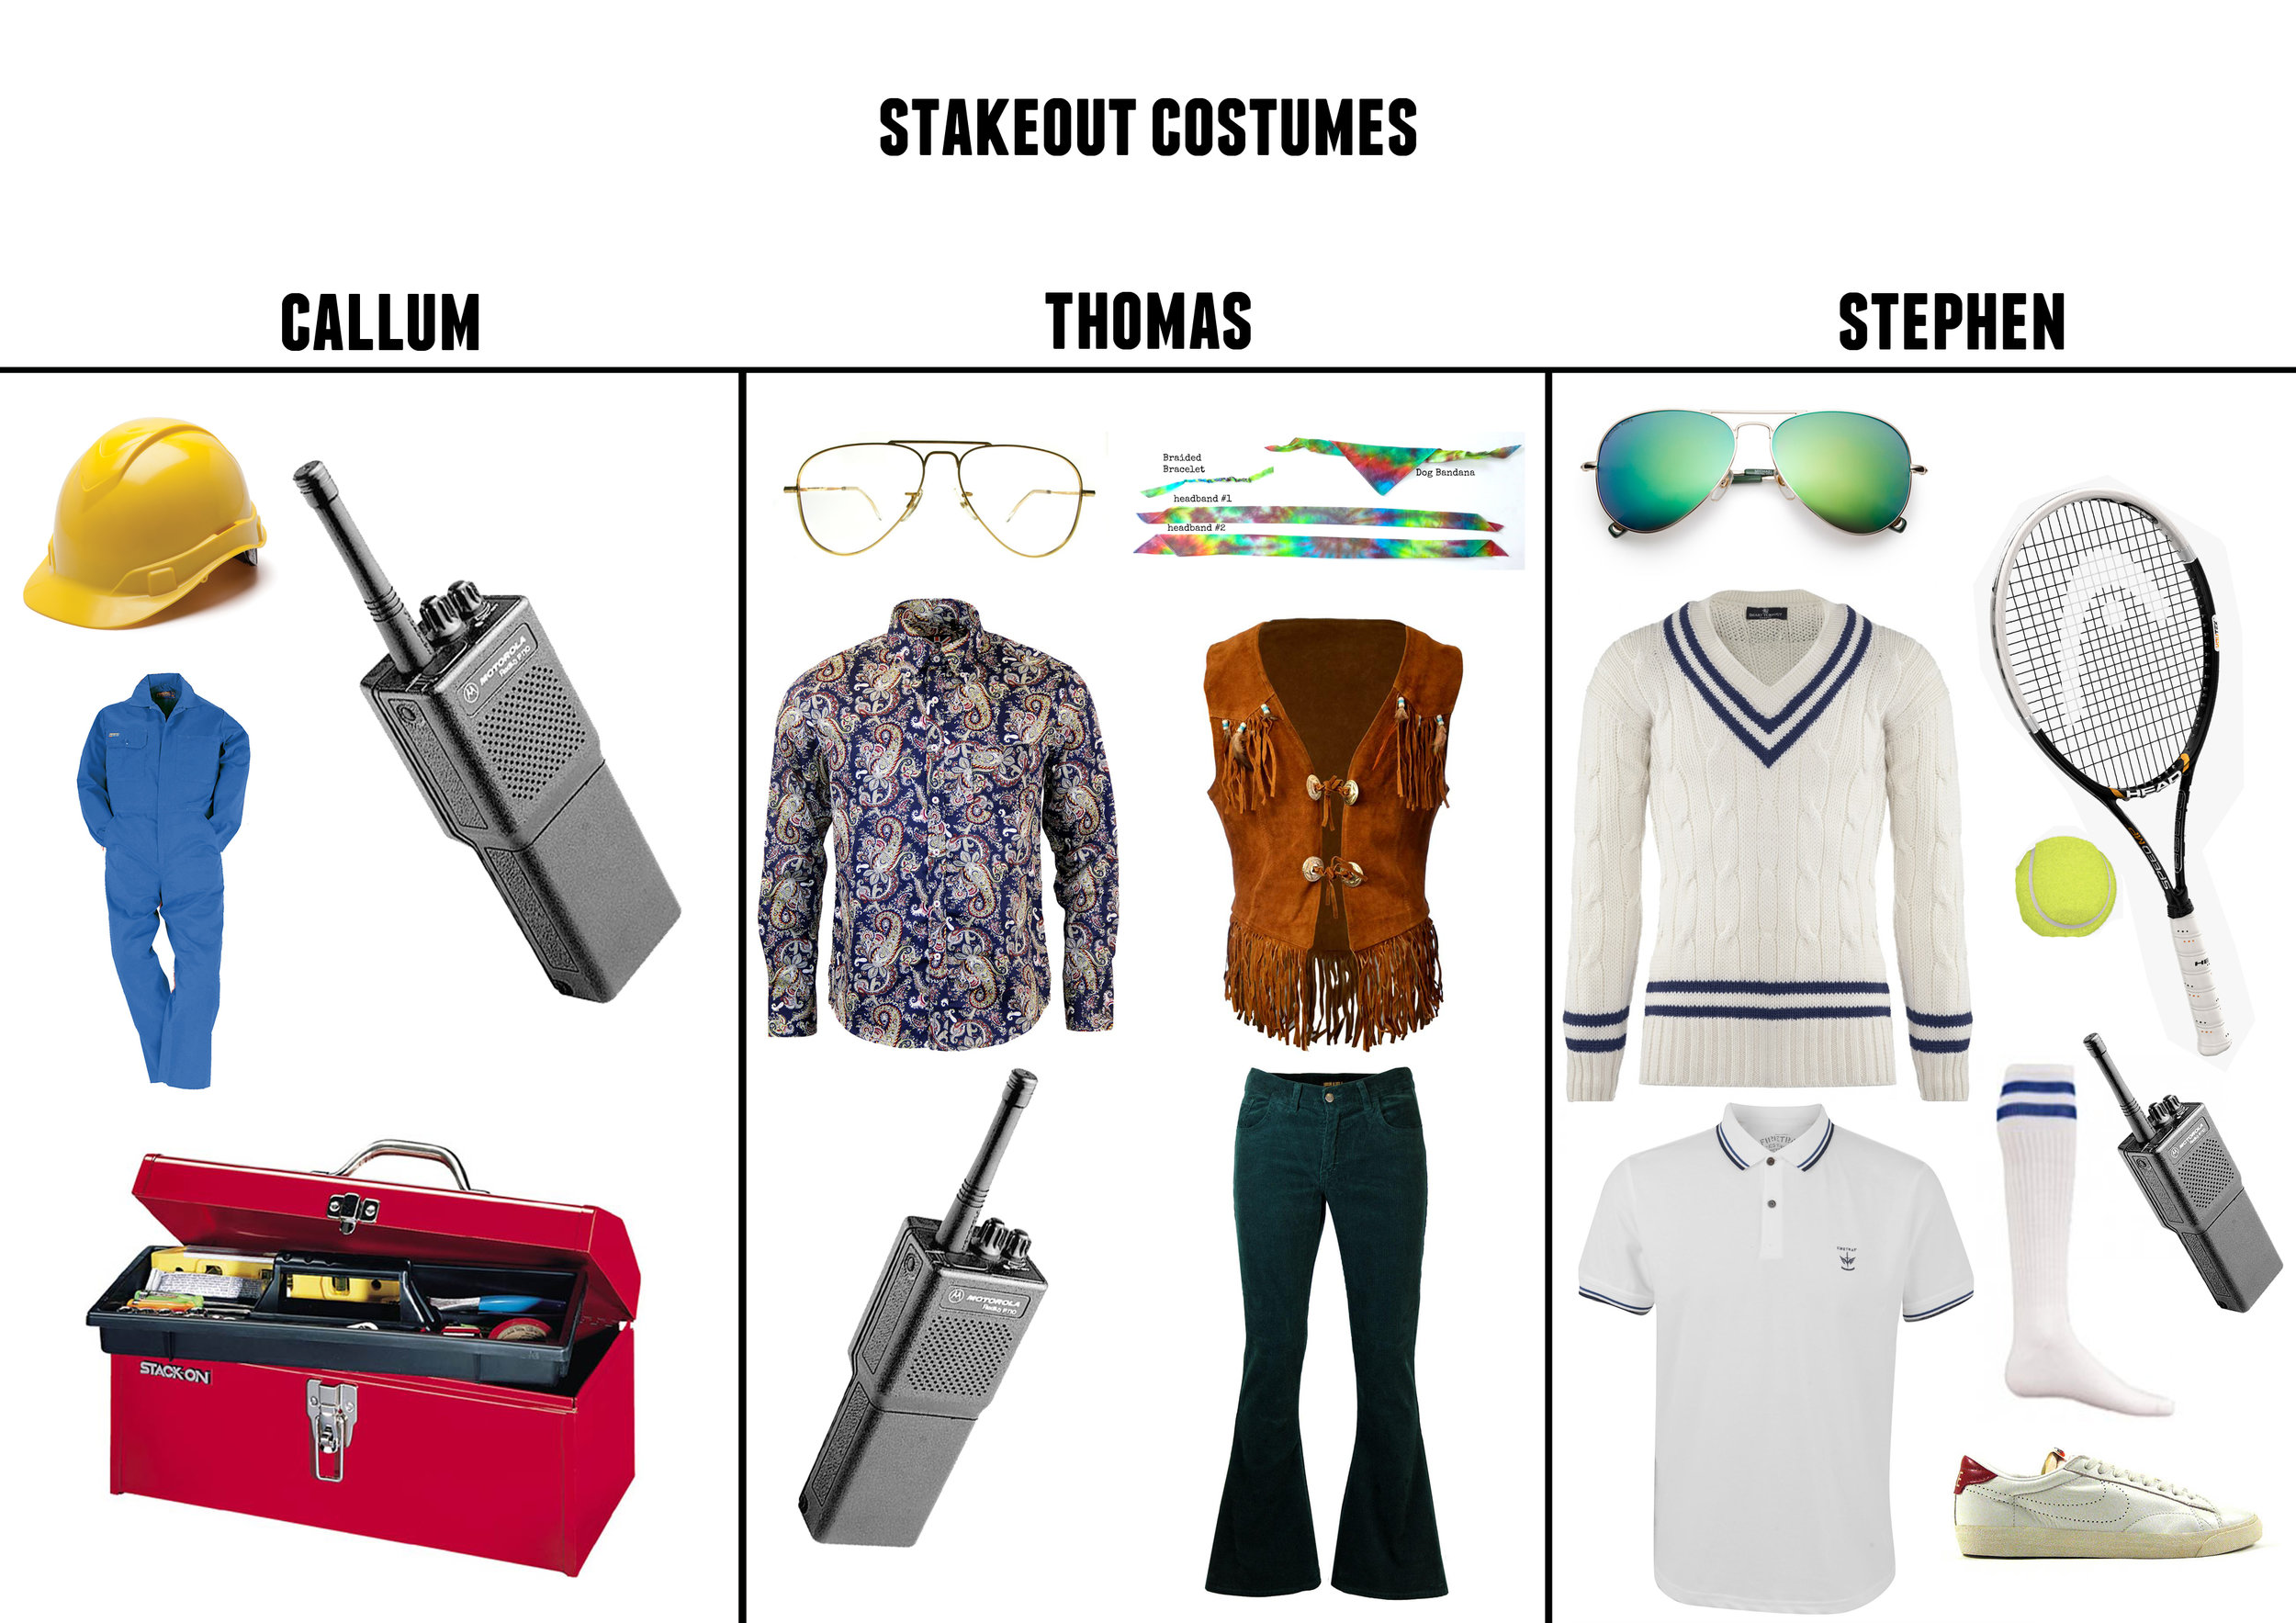 Stakeout Costumes.jpg